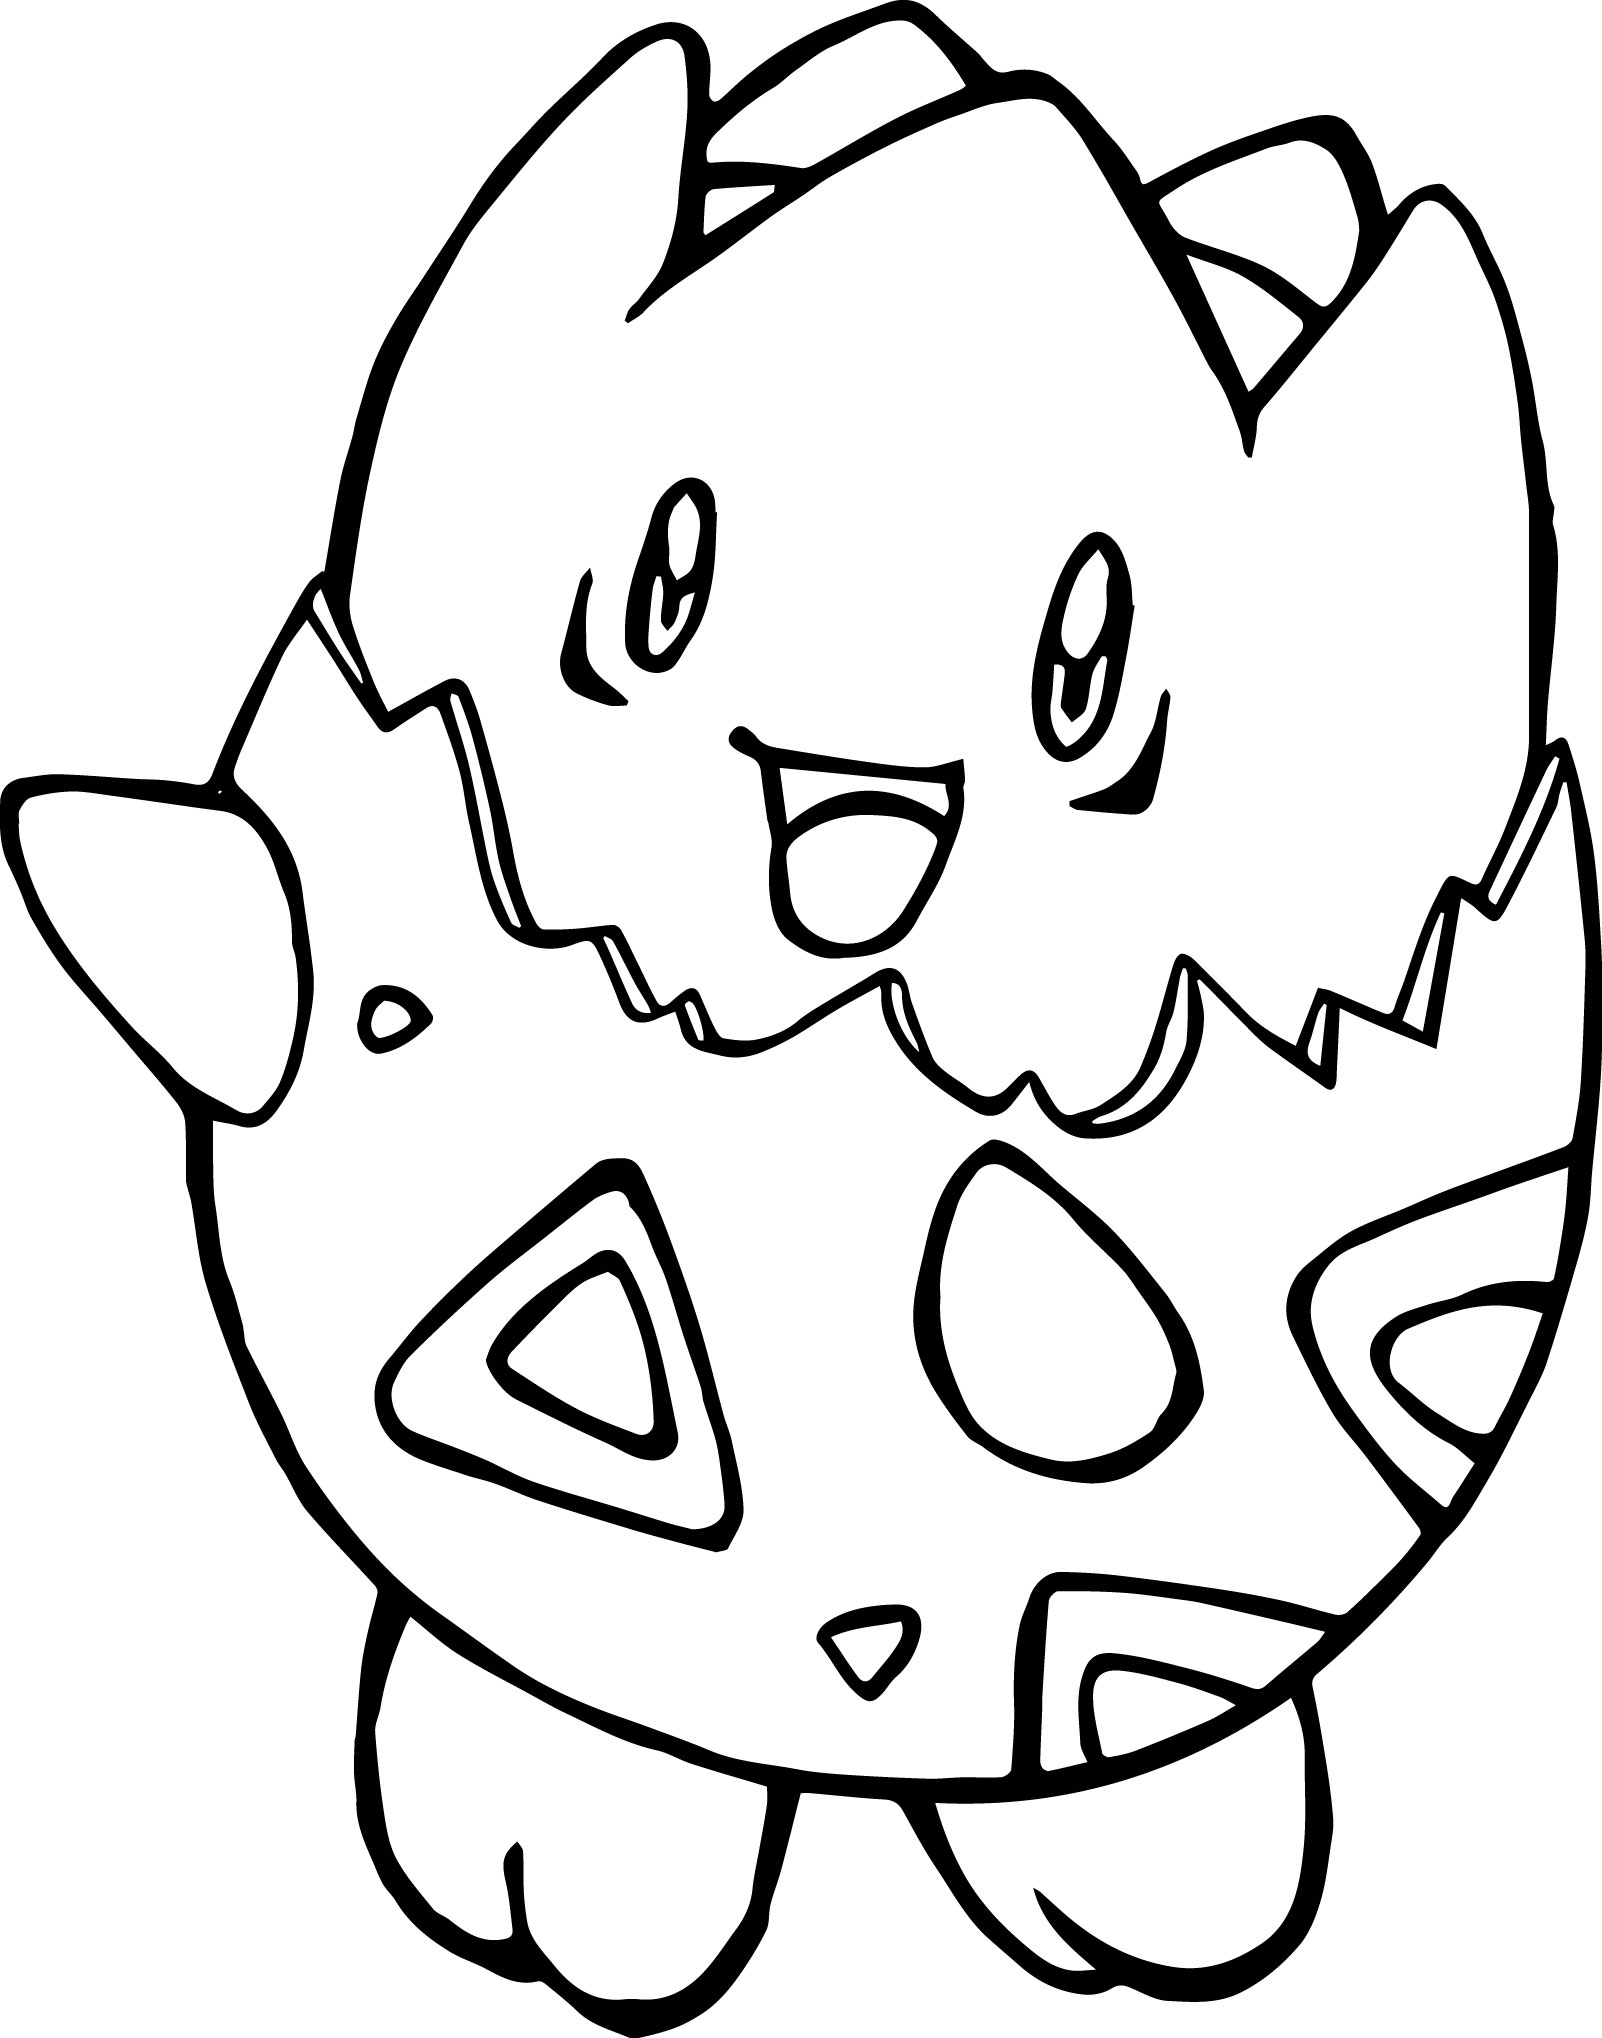 Charizard coloring page  Free Printable Coloring Pages